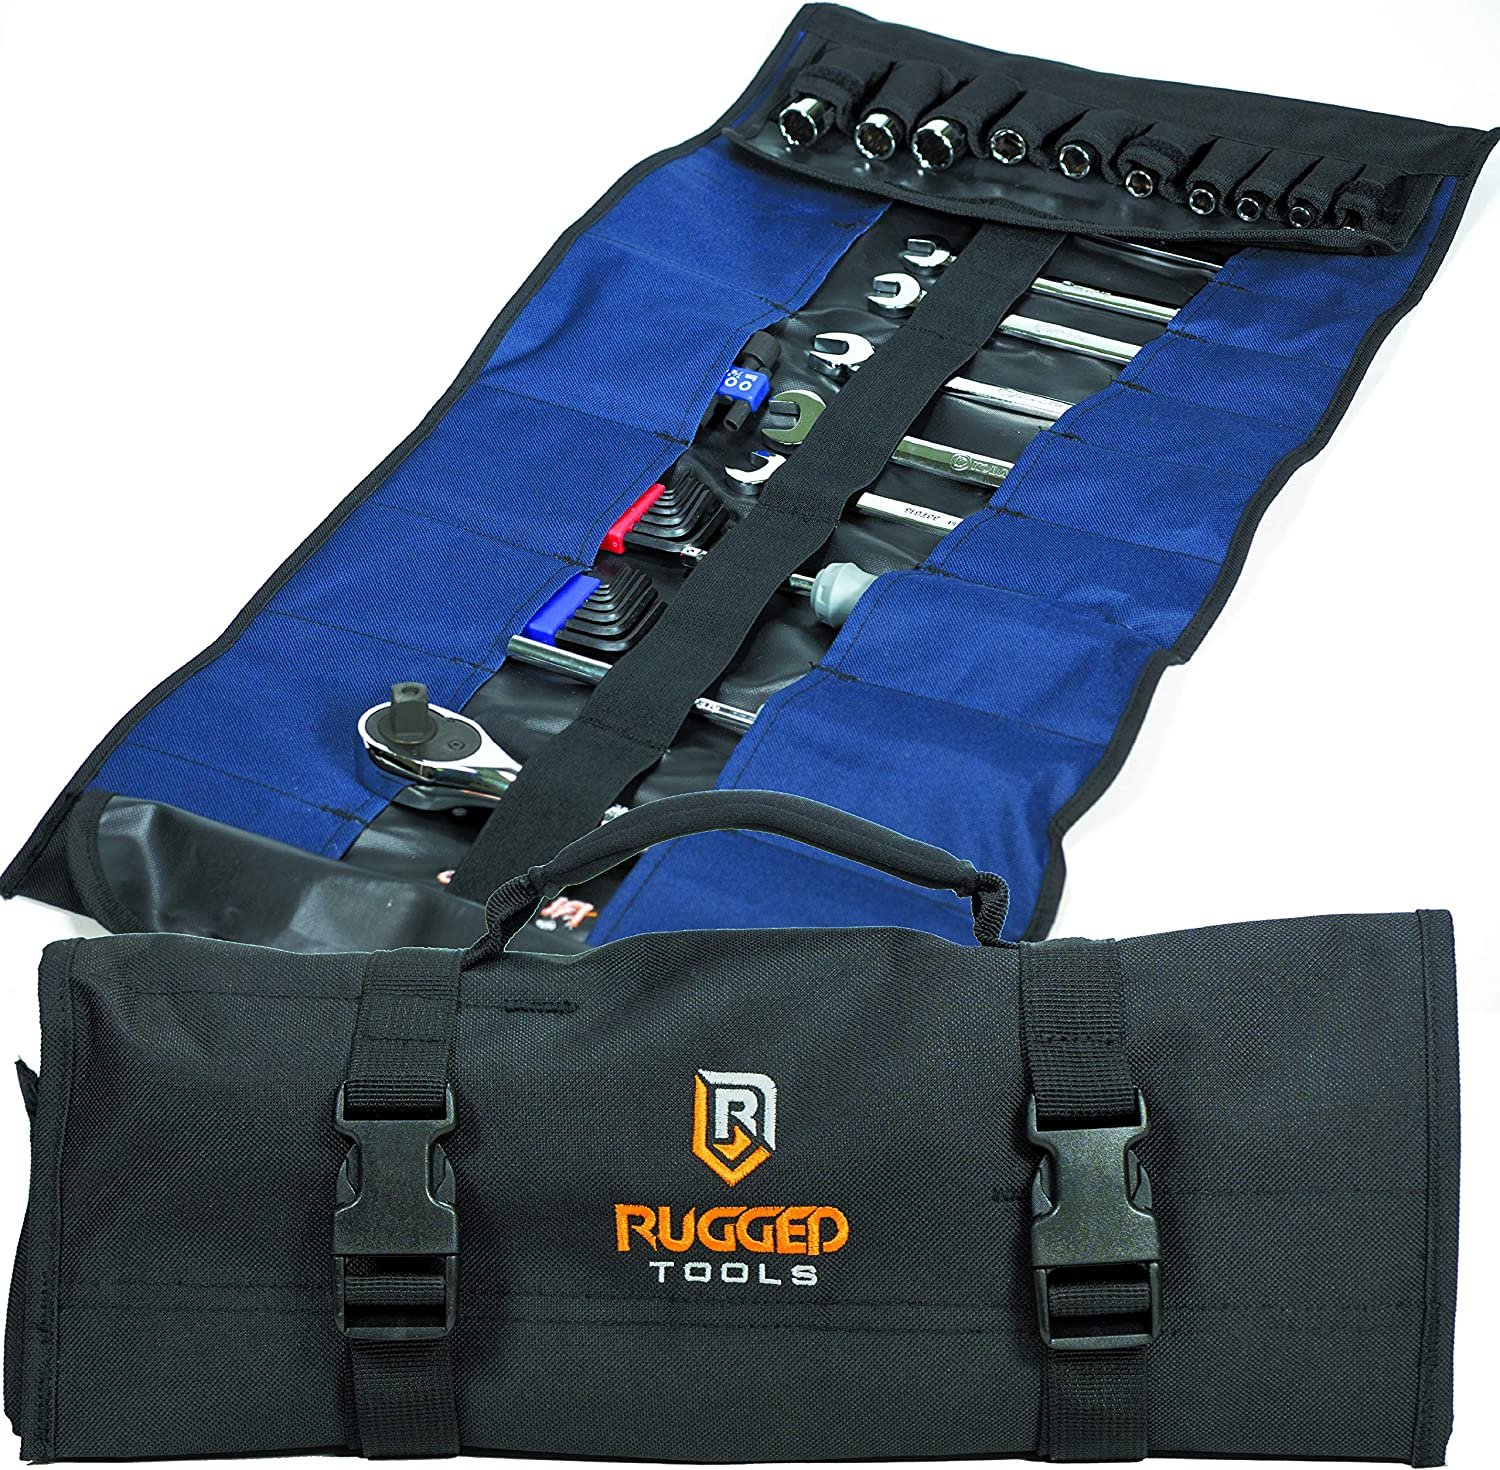 32 Pocket Tool Roll Organizer Pouch - Wrench San Jose Mall We OFFer at cheap prices